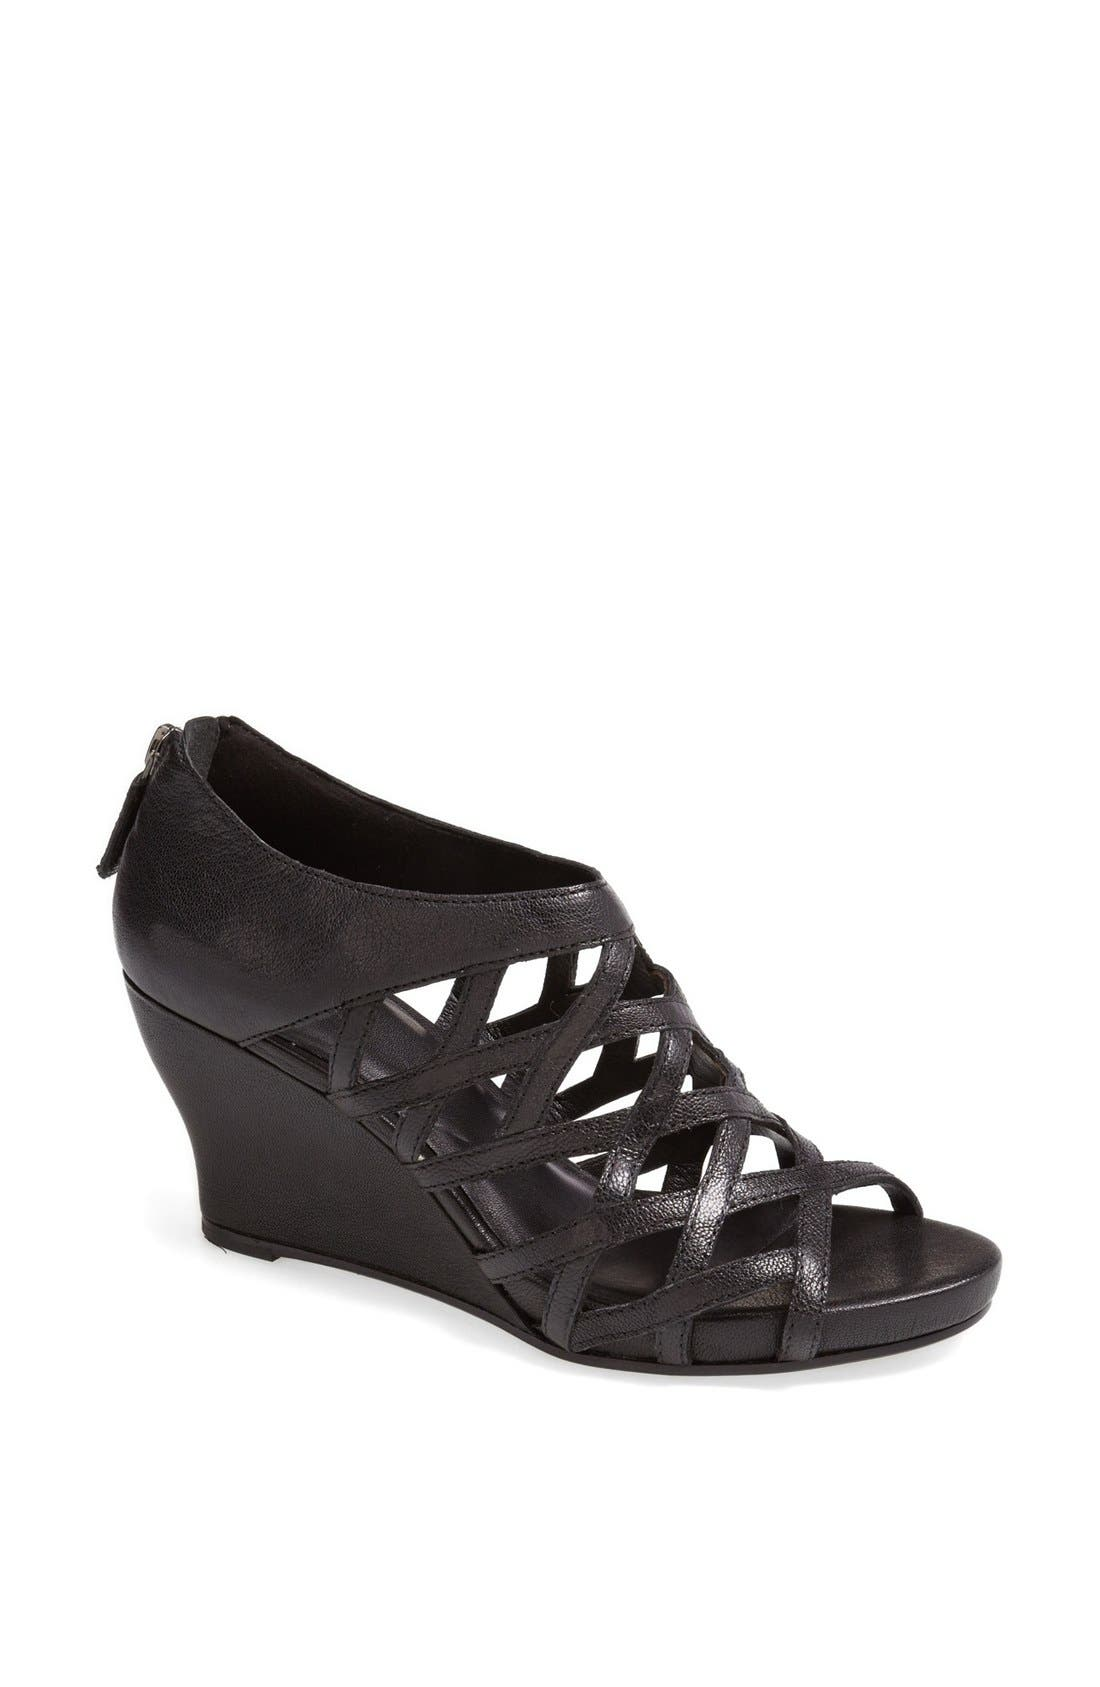 Main Image - Eileen Fisher 'Cage' Sandal